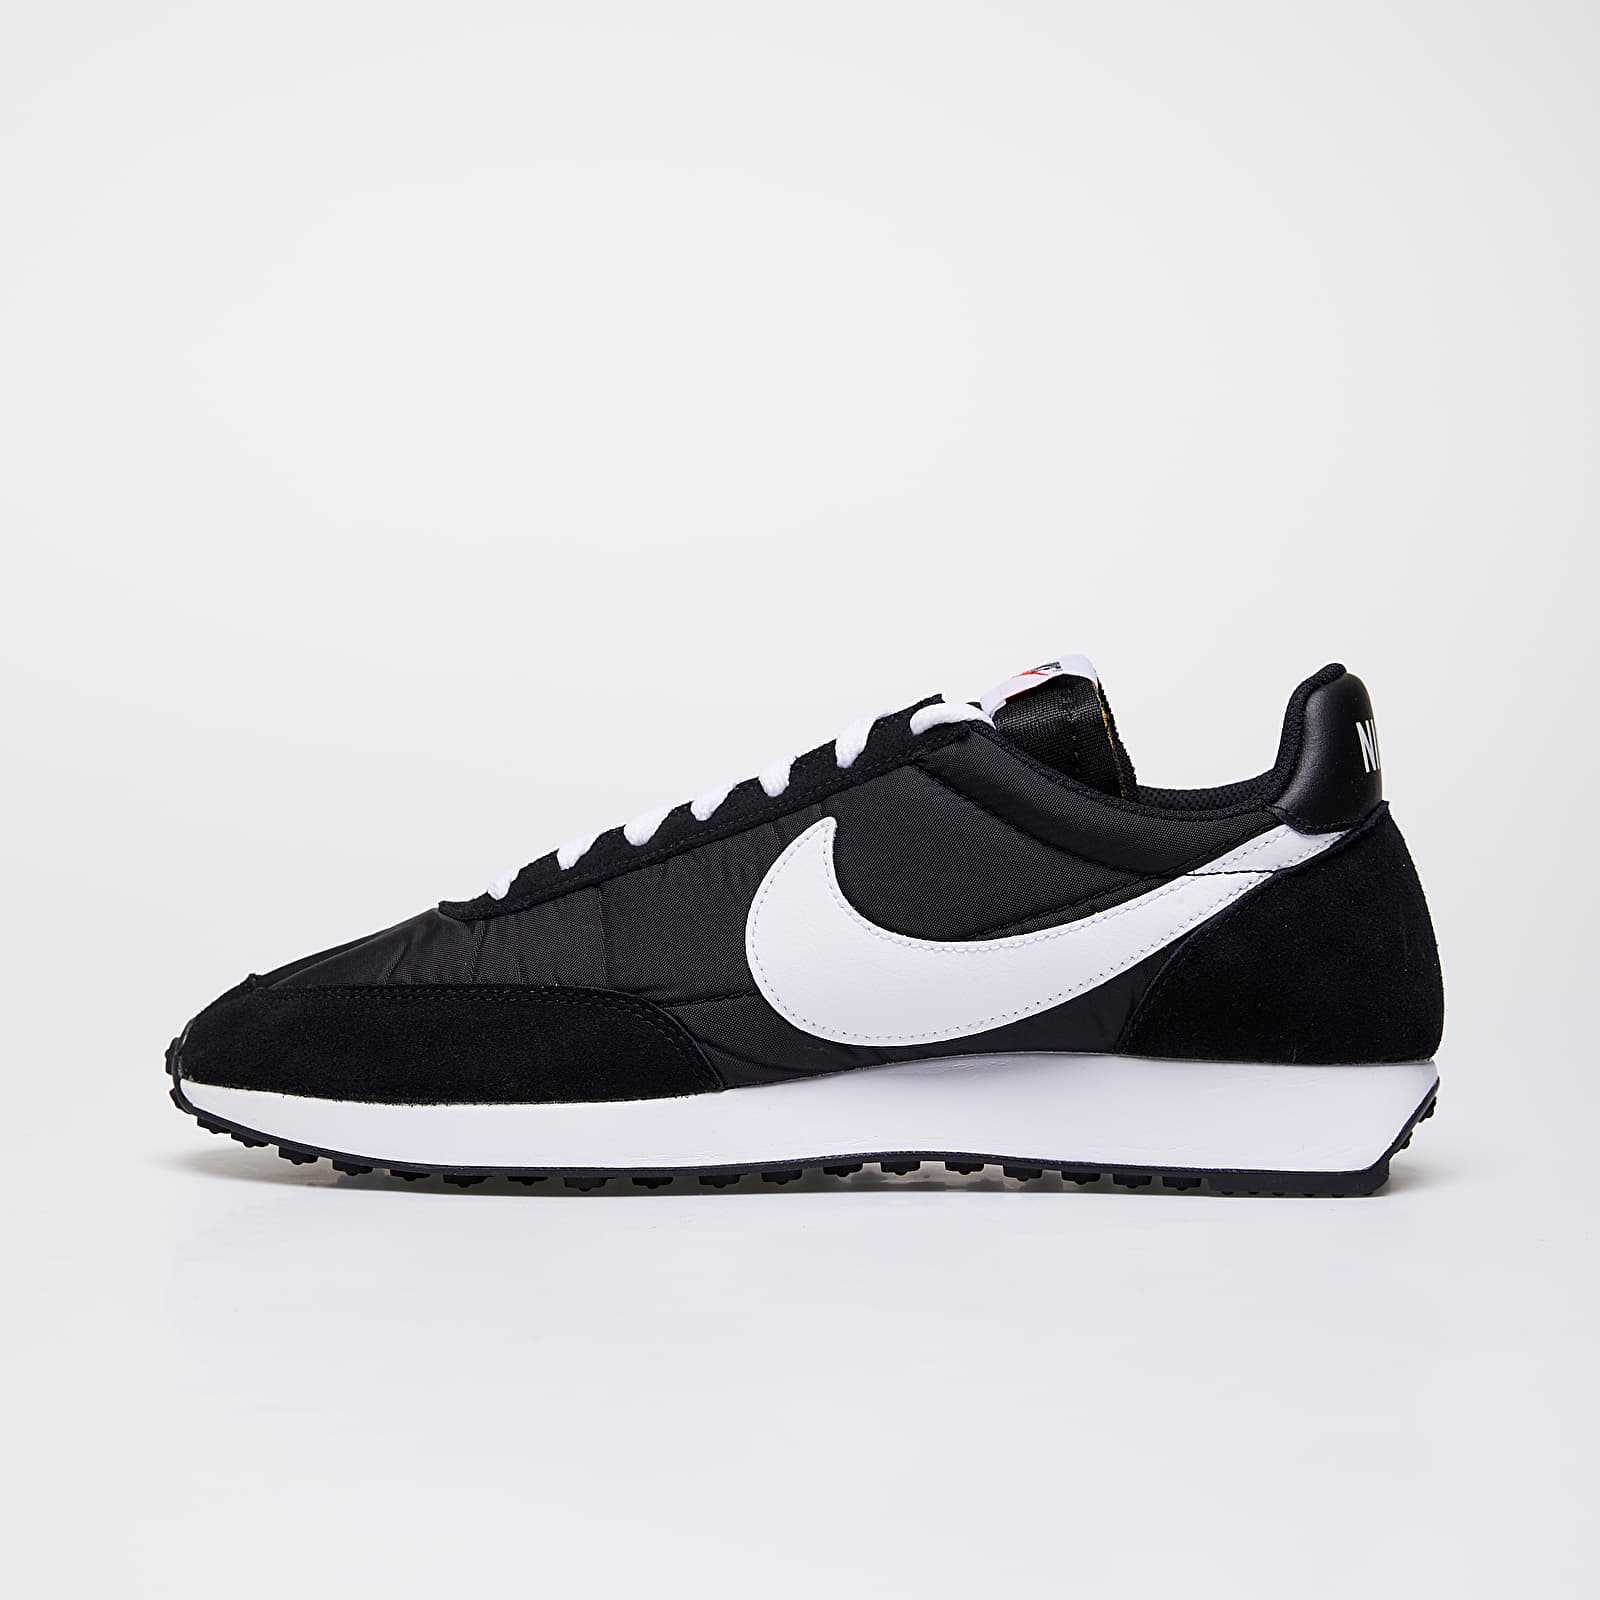 Férfi cipők Nike Air Tailwind 79 Black/ White-Team Orange